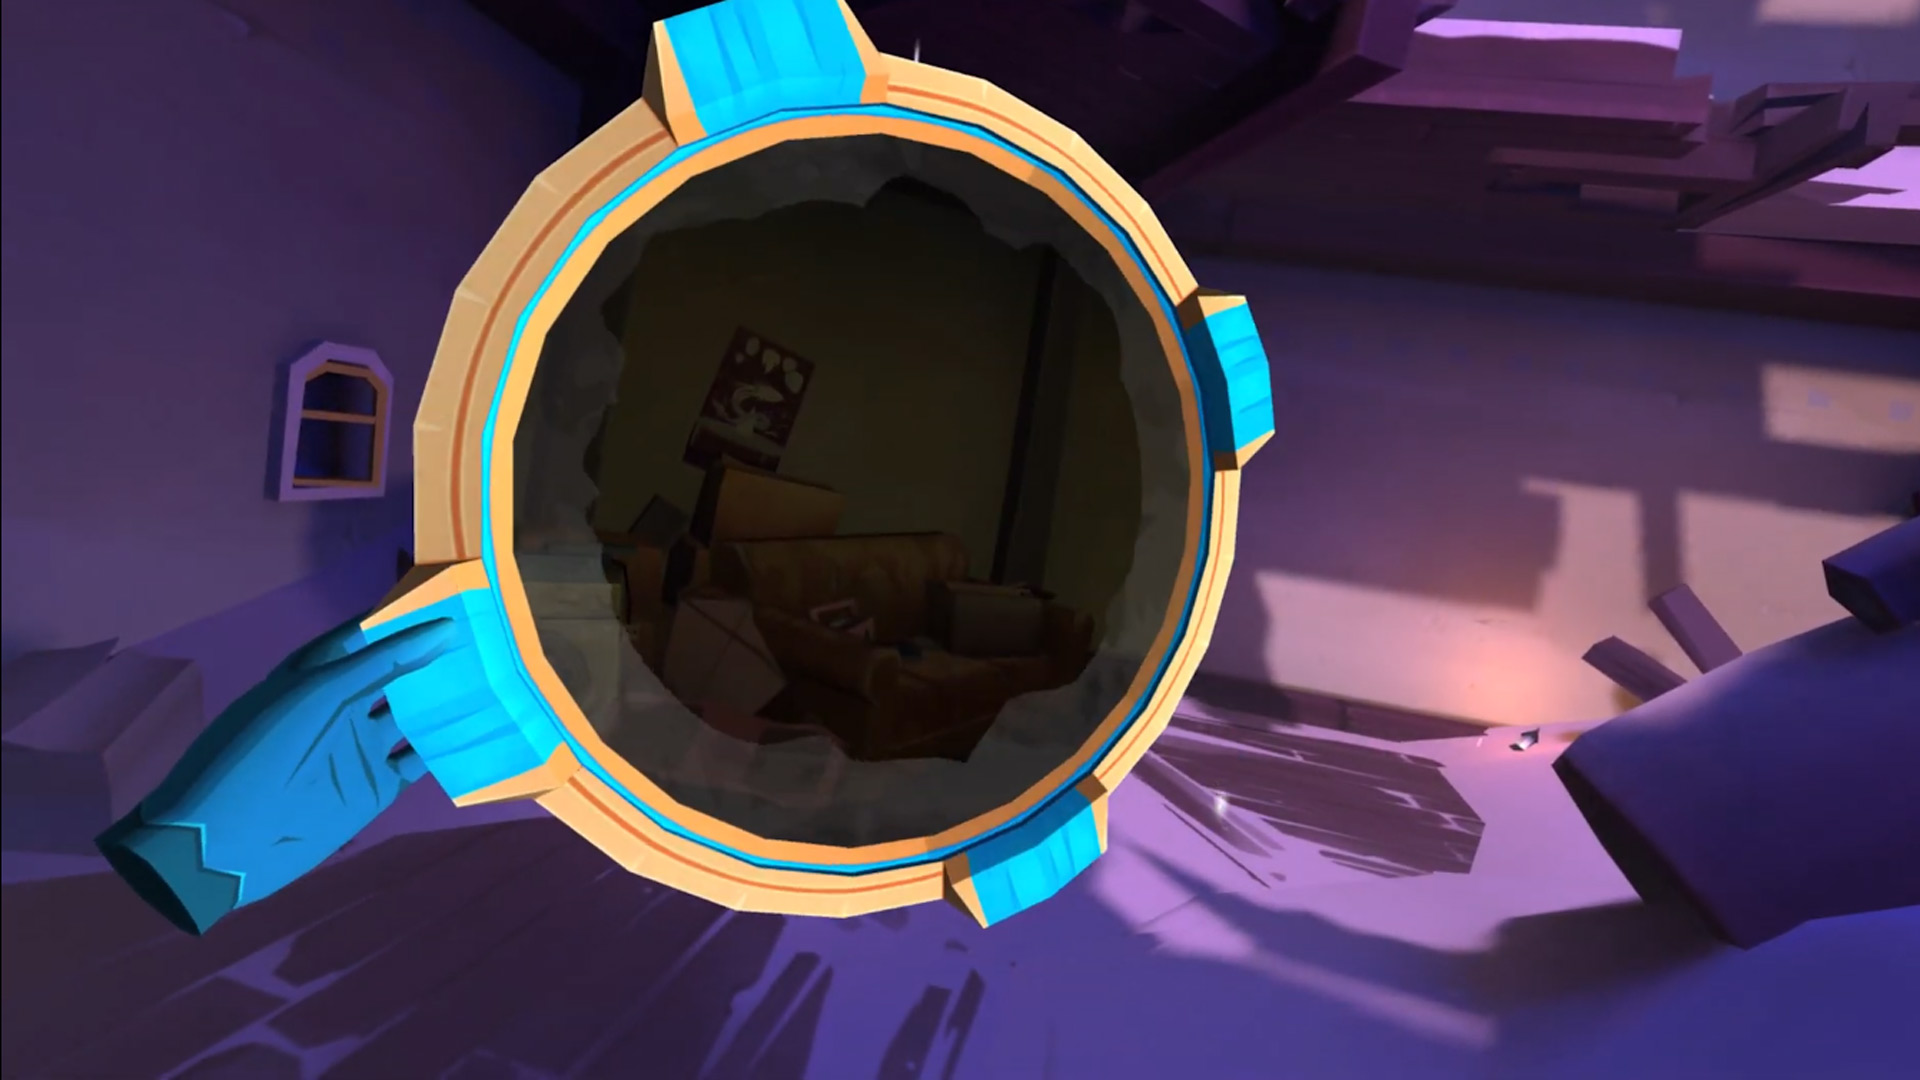 Coatsink Reveals 'Shadow Point' Gameplay in New Trailer, Coming to Quest & Rift in Spring – Road to VR